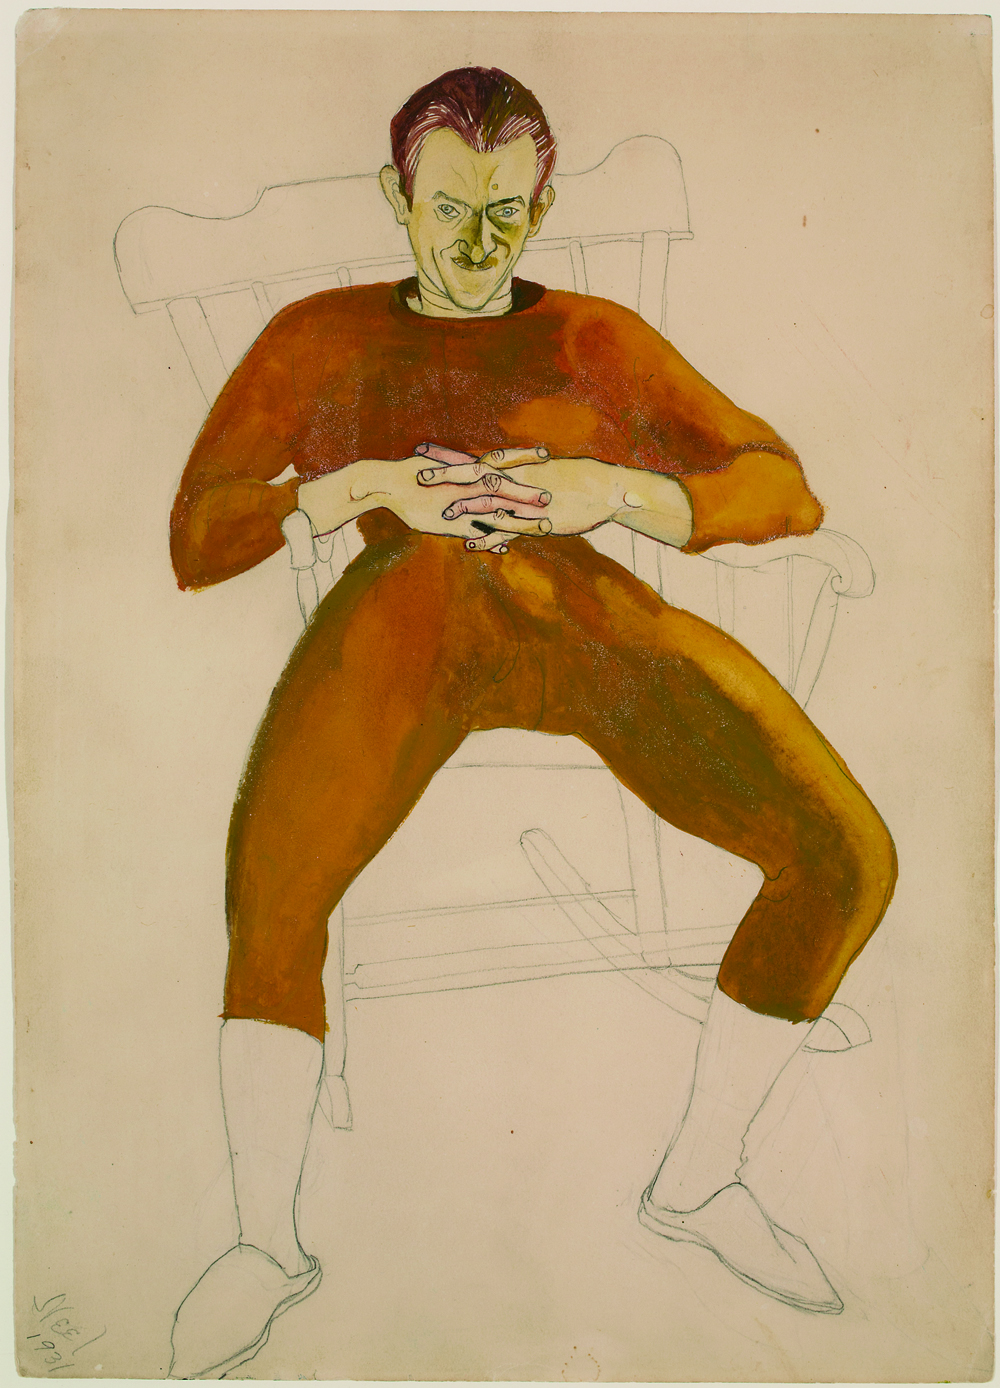 Kenneth Doolittle, 1931, watercolor and pencil on paper, 14 x 10 inches (Hirshho